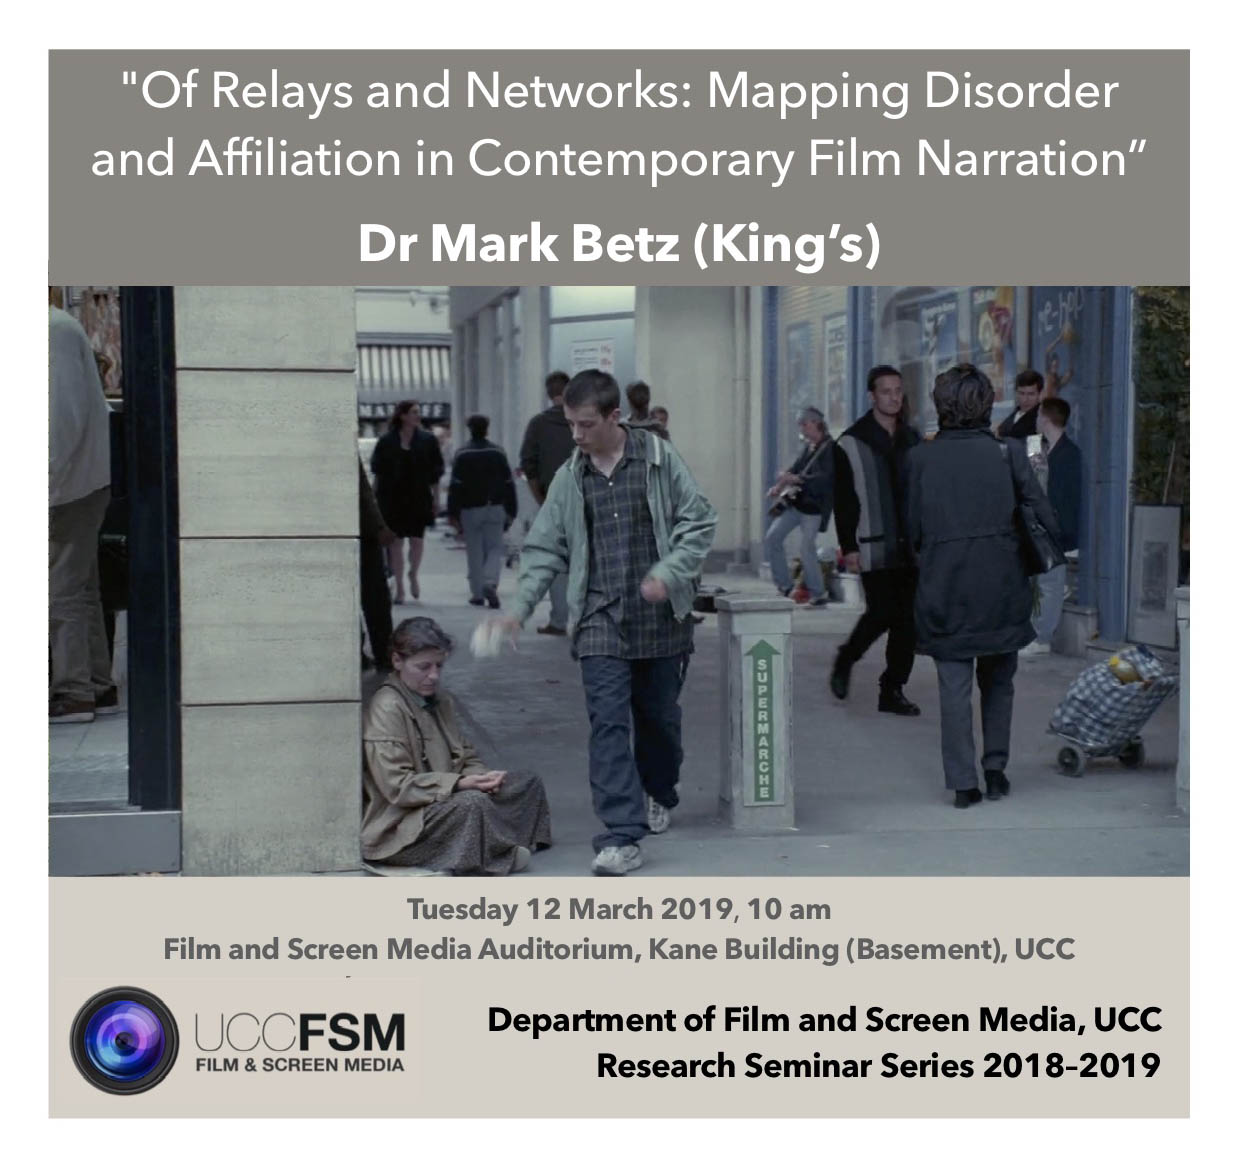 Dr Mark Betz. Research Seminar. 10am, Tues 12 March.